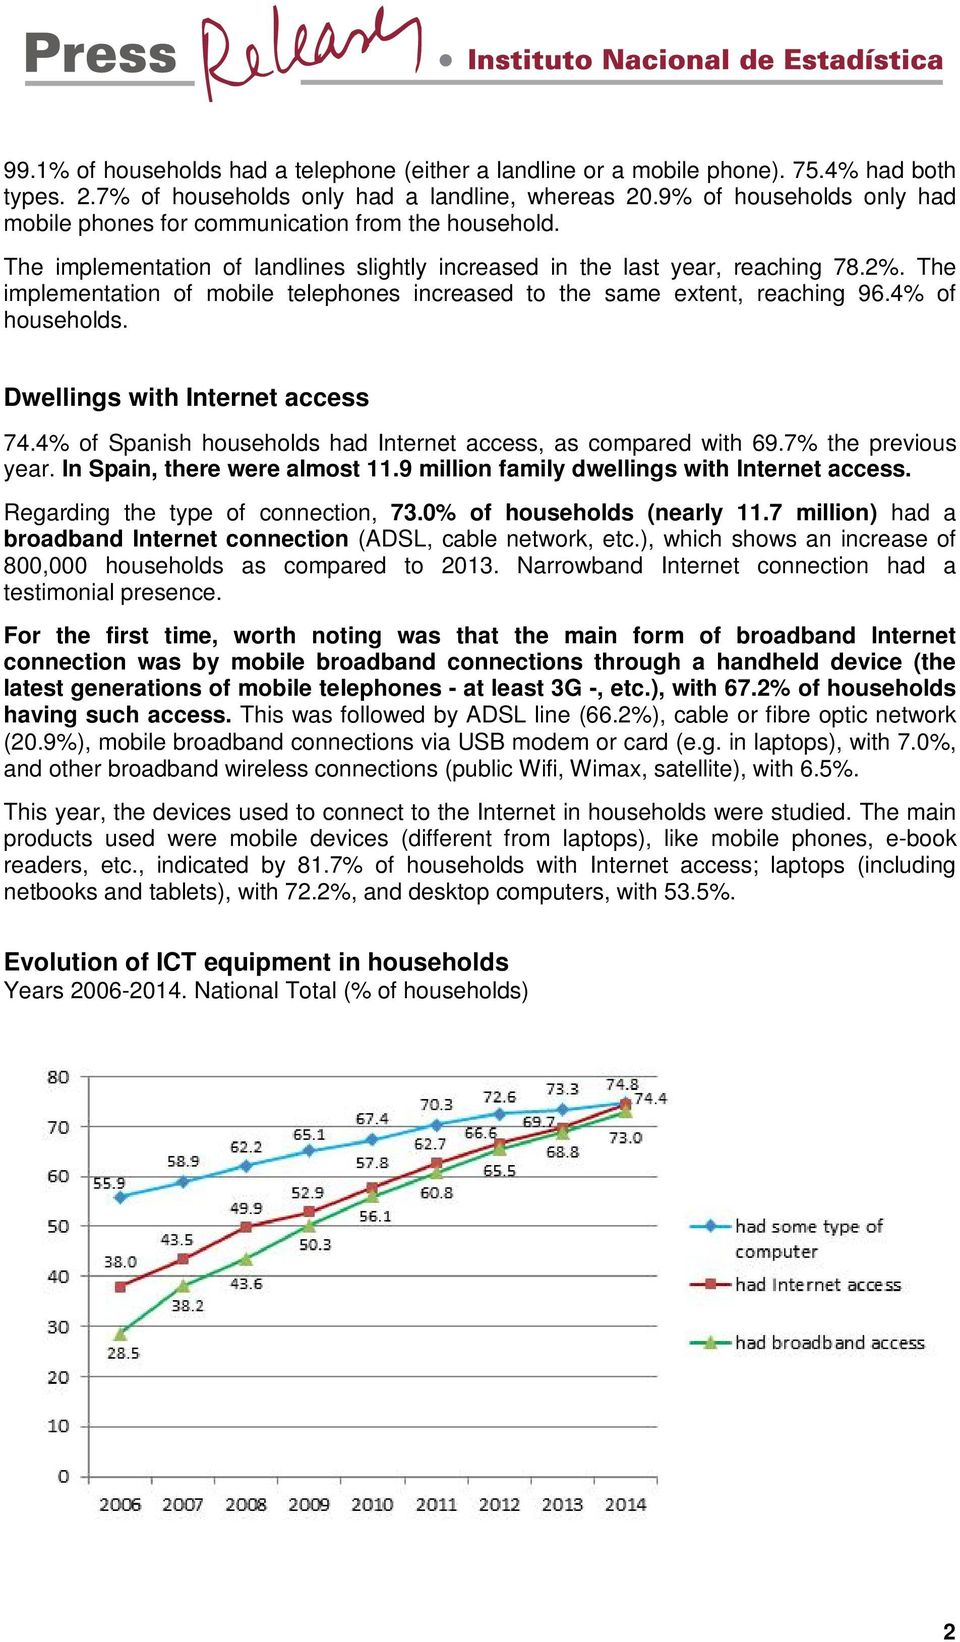 The implementation of mobile telephones increased to the same extent, reaching 96.4% of households. Dwellings with Internet access 74.4% of Spanish households had Internet access, as compared with 69.